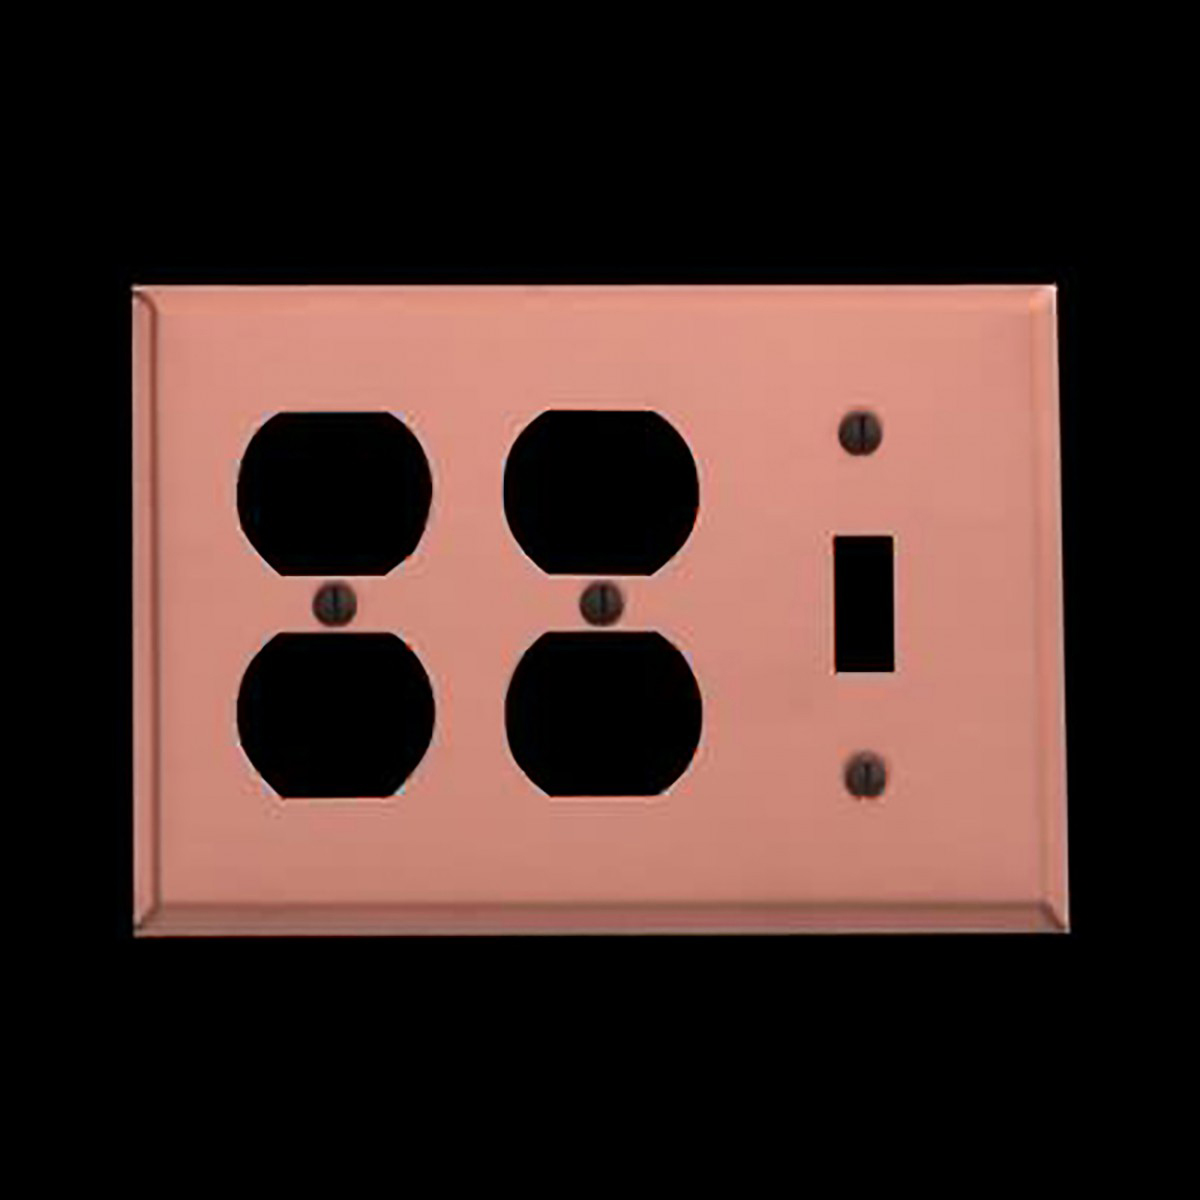 Switchplate Brushed Solid Copper Toggle 2 Outlet Switch Plate Wall Plates Switch Plates